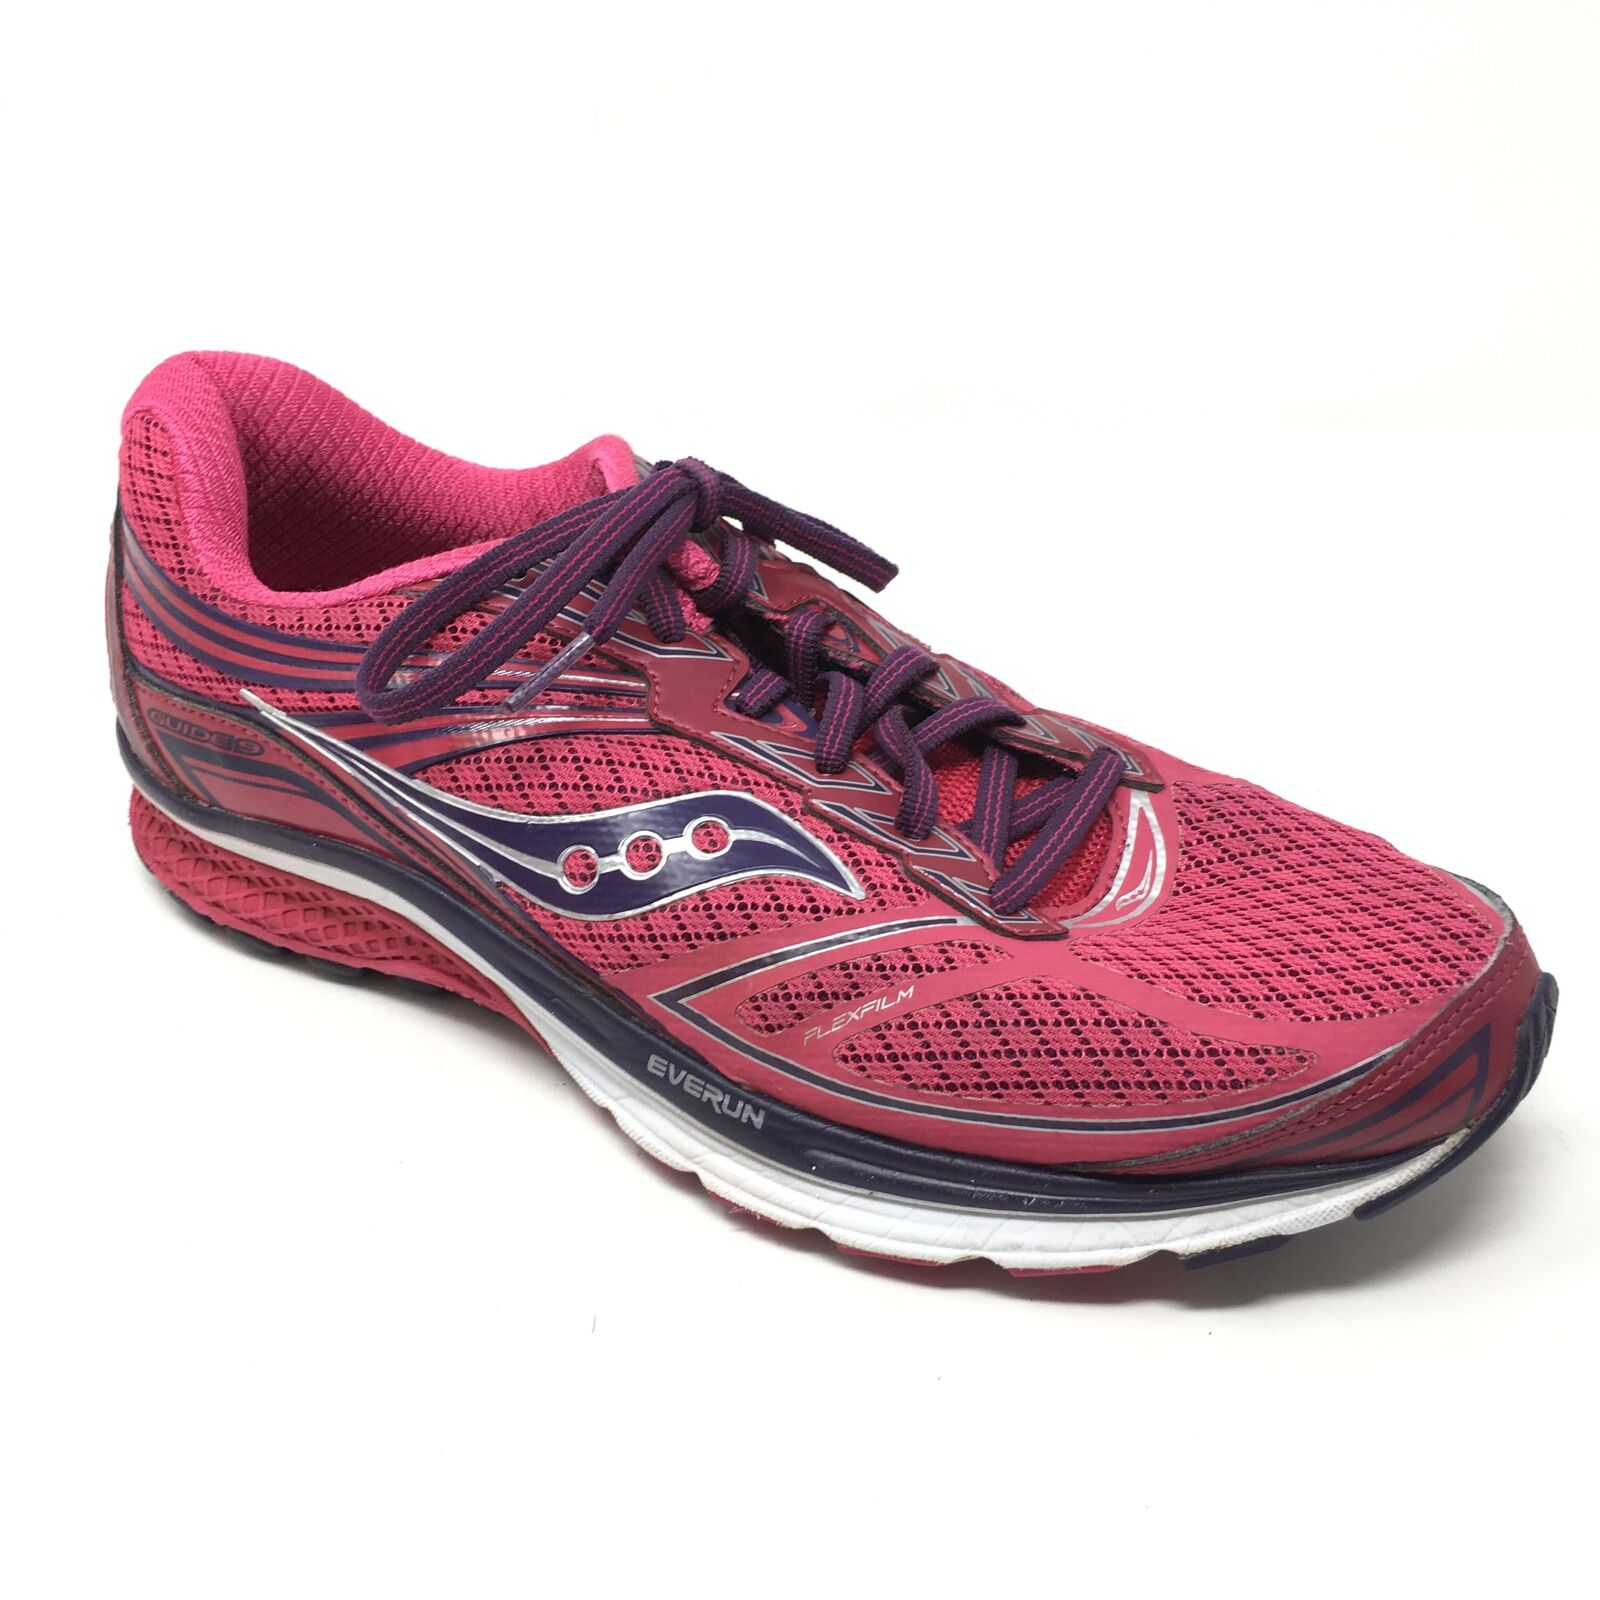 Women's Saucony Guide 9 Shoes Sneakers Size 11.5 Running Pink Indigo Flexfilm V8